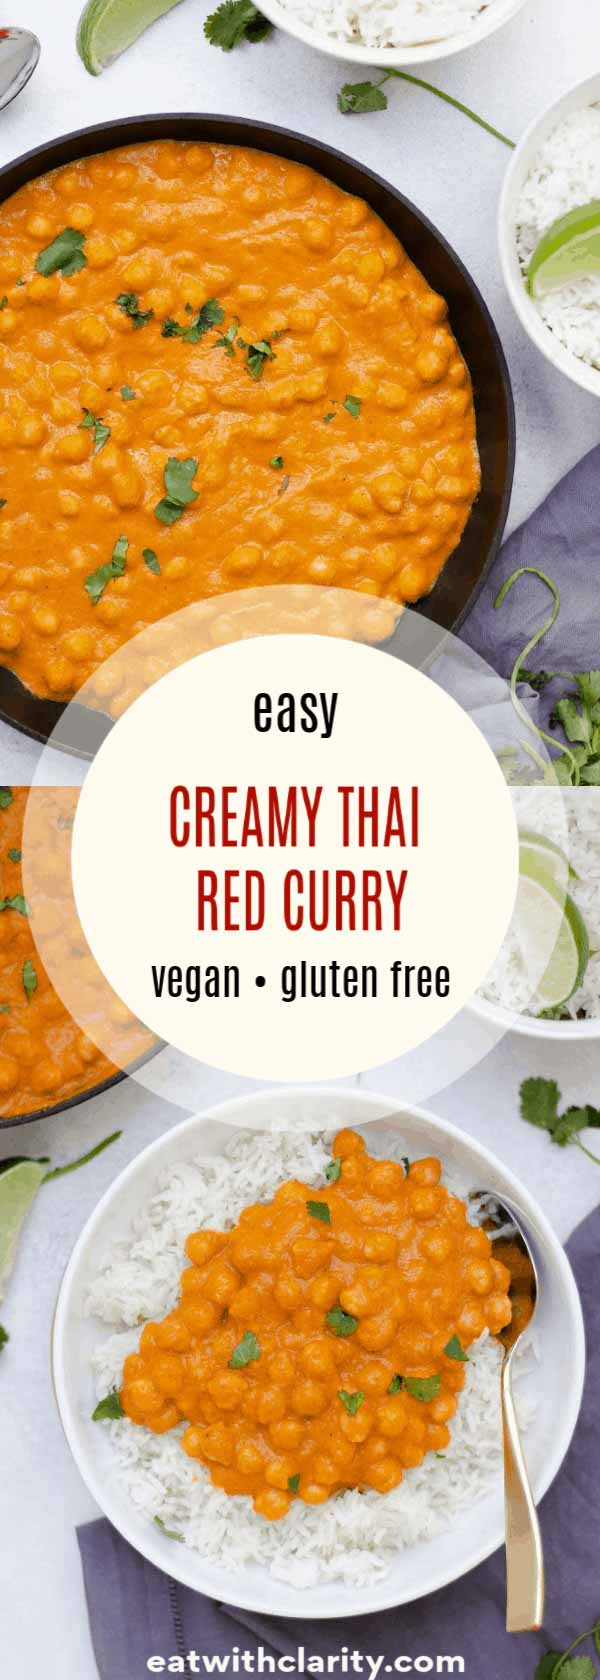 Pin this thai red curry recipe for later!